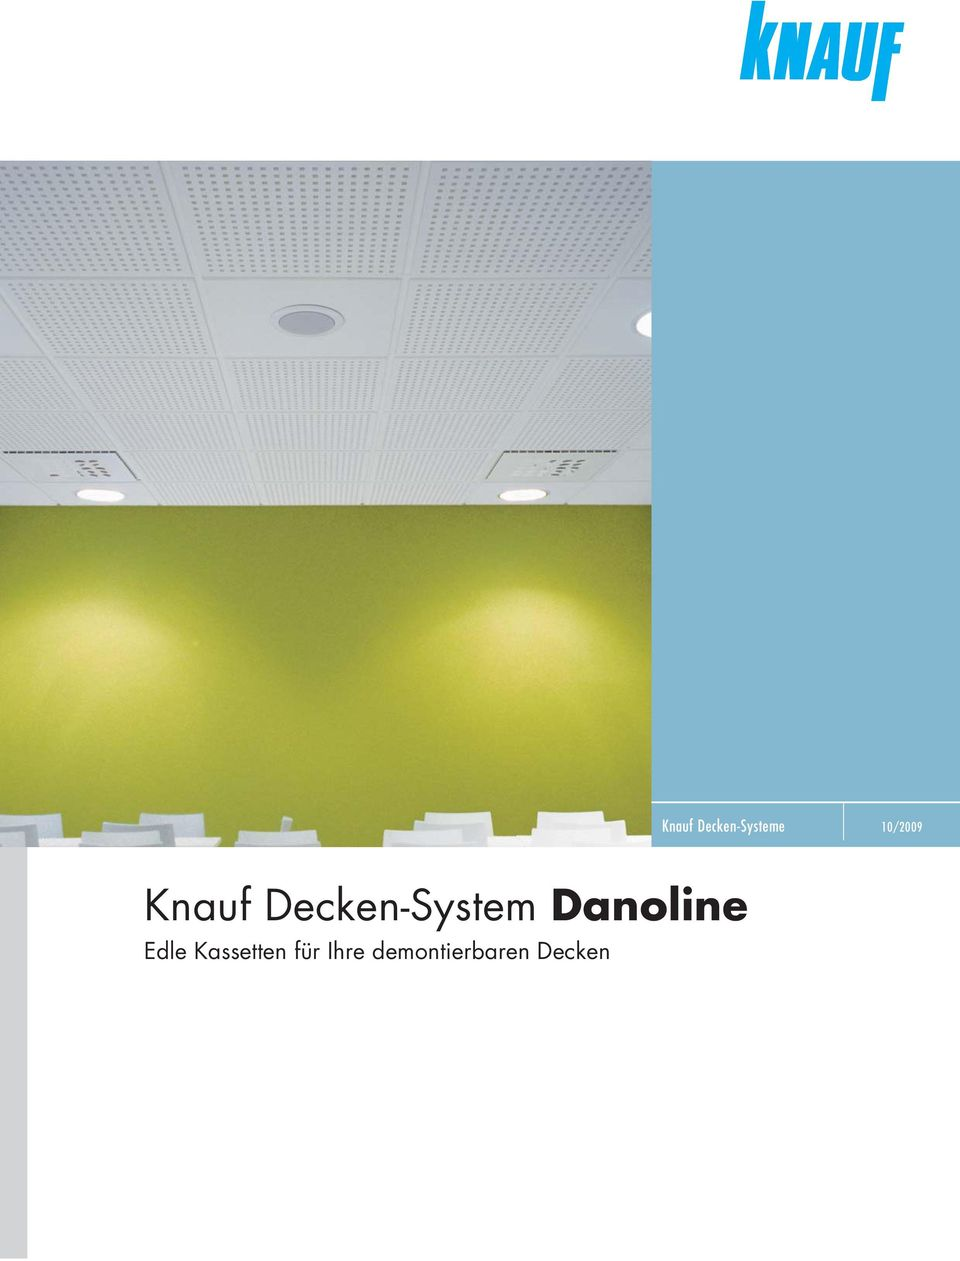 knauf decken systeme 10 2009 knauf decken system danoline. Black Bedroom Furniture Sets. Home Design Ideas